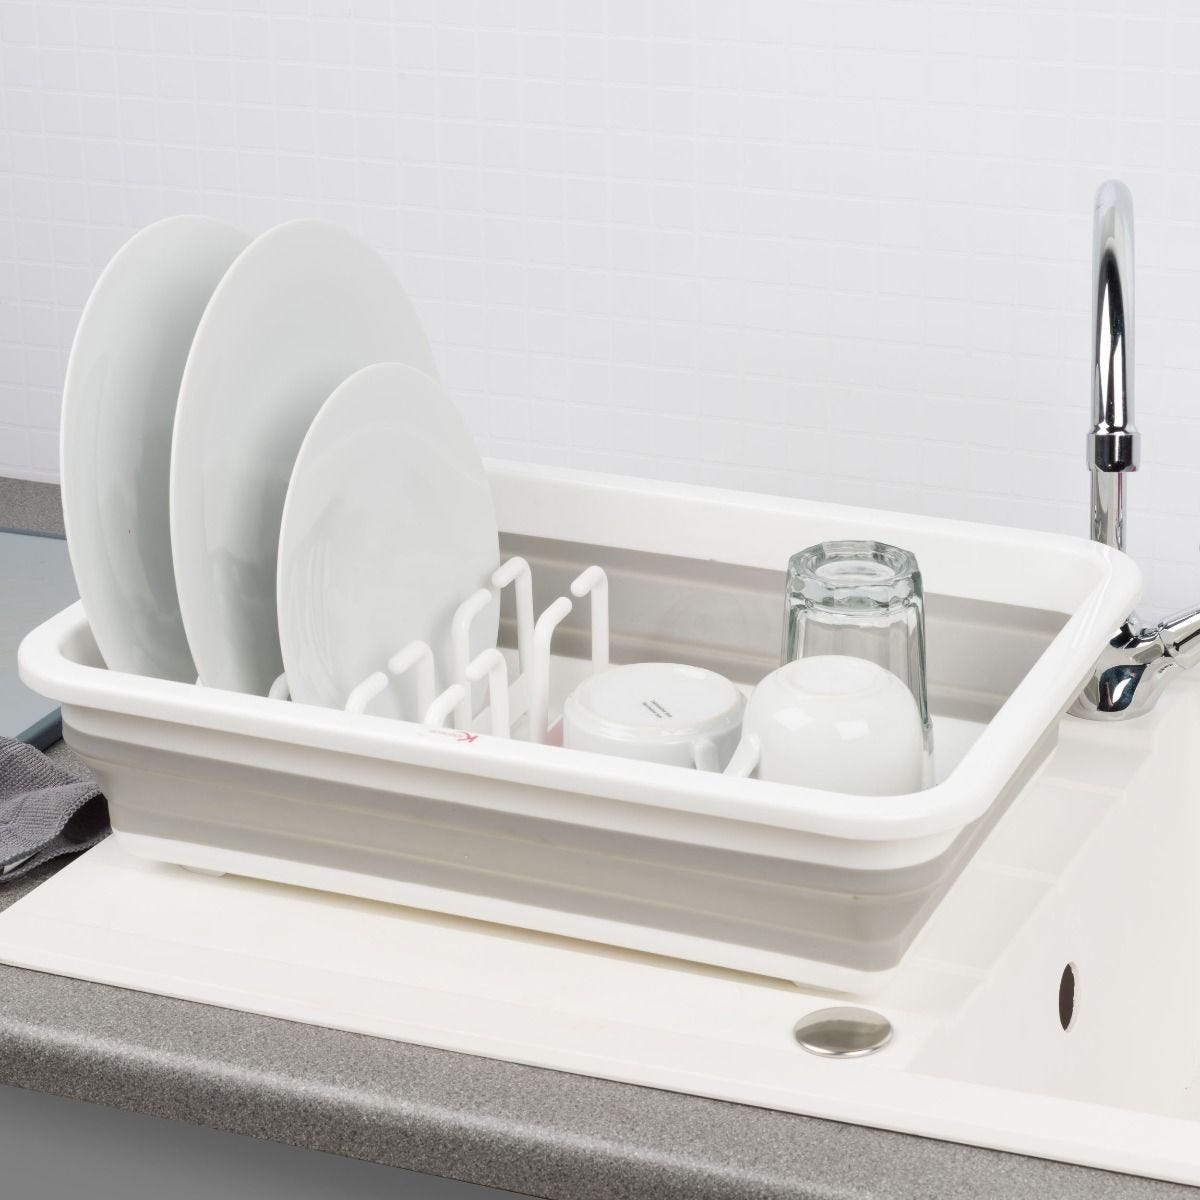 Kleeneze  Collapsible Dish Drainer White/Grey